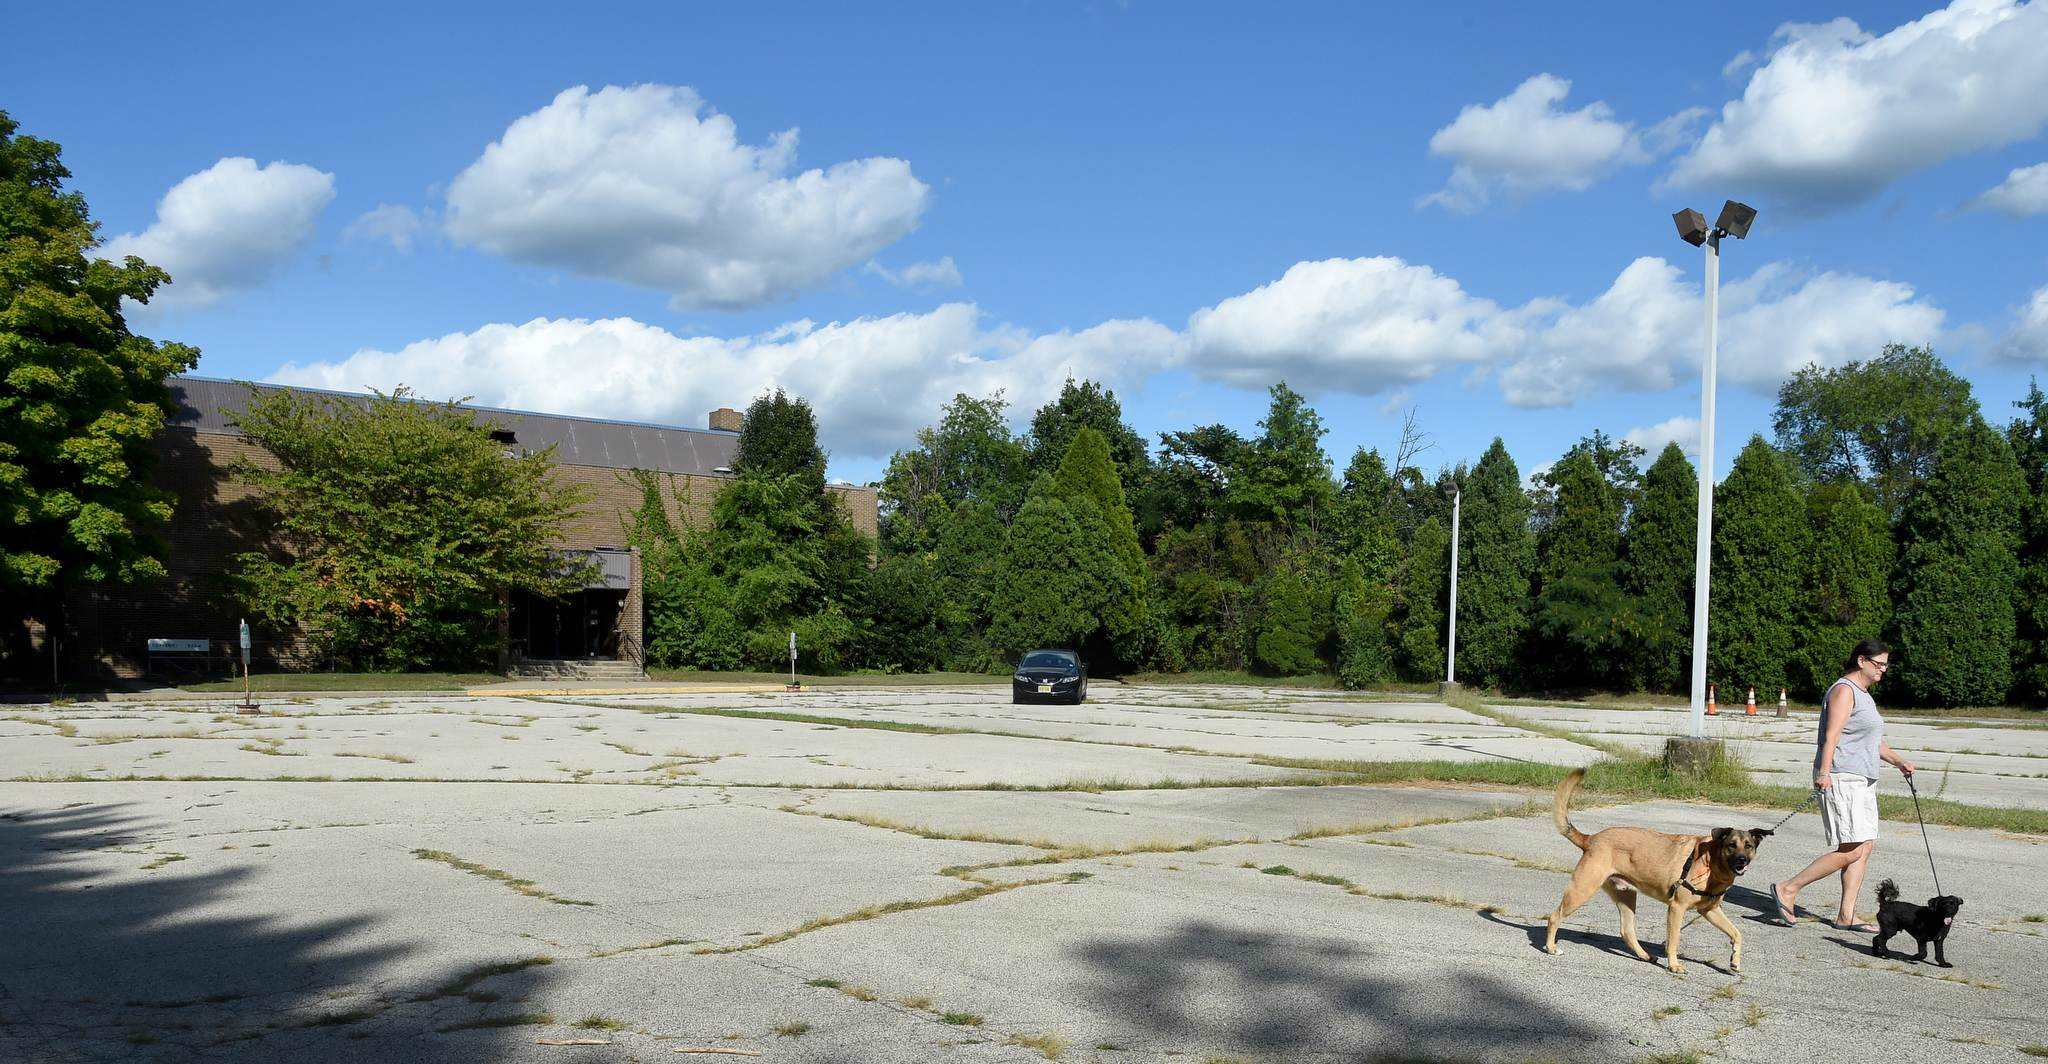 A homeowner whose home is adjacent to the vacant Masonic lodge walks her dogs in the parking lot. She attended the Tuesday township planning board meeting to learn more about a proposed drug and alcohol rehab center for the site.